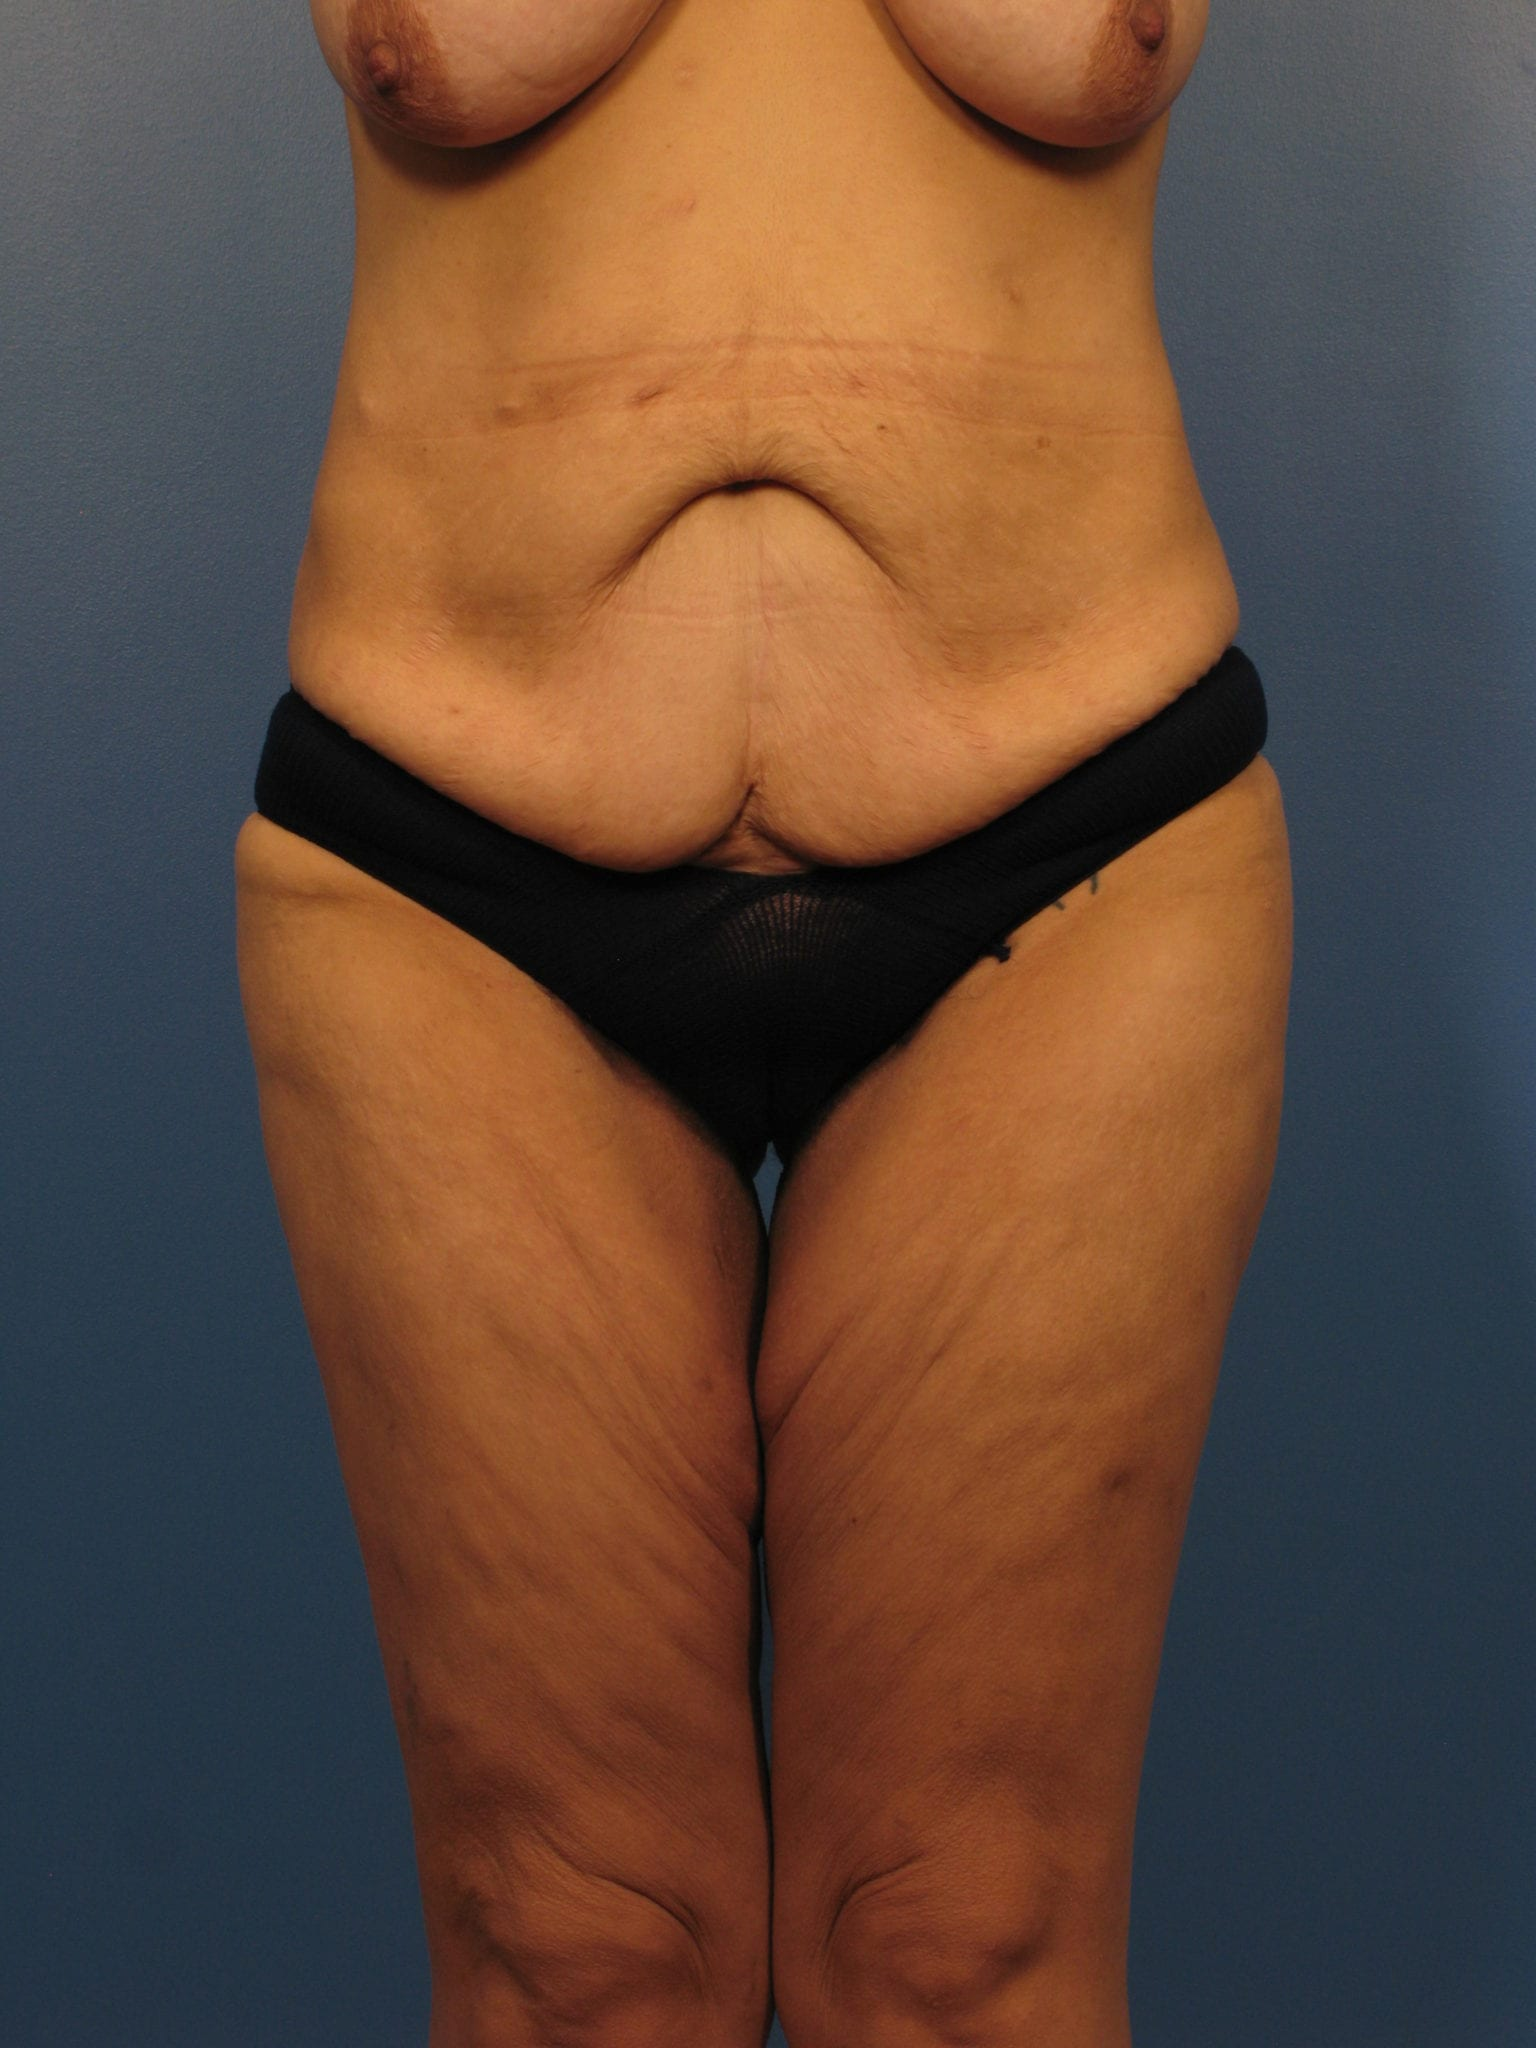 Breast Lift Patient Photo - Case 395 - before view-2